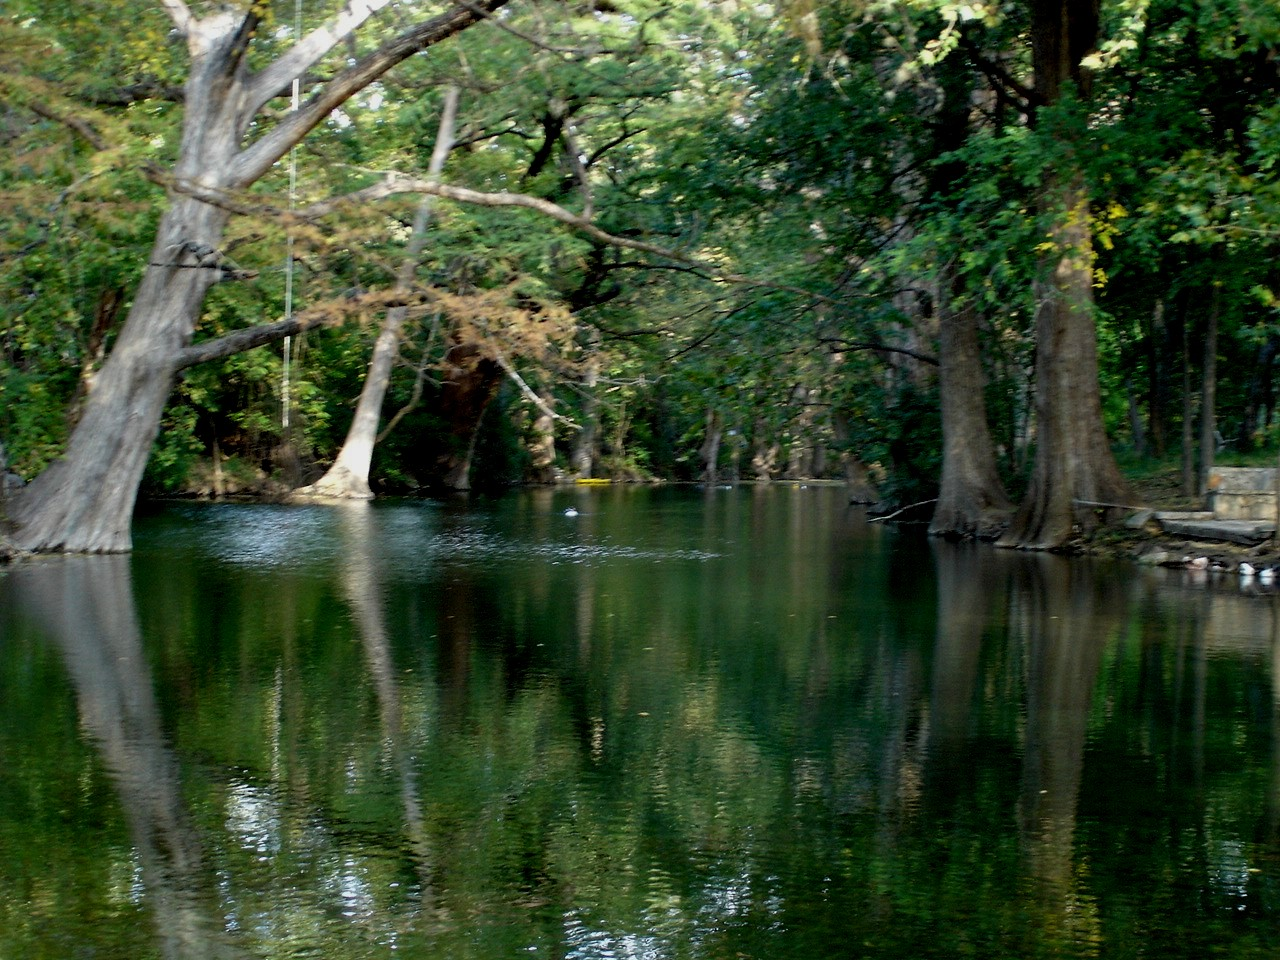 Settlement reached in Wimberley wastewater discharge permit application